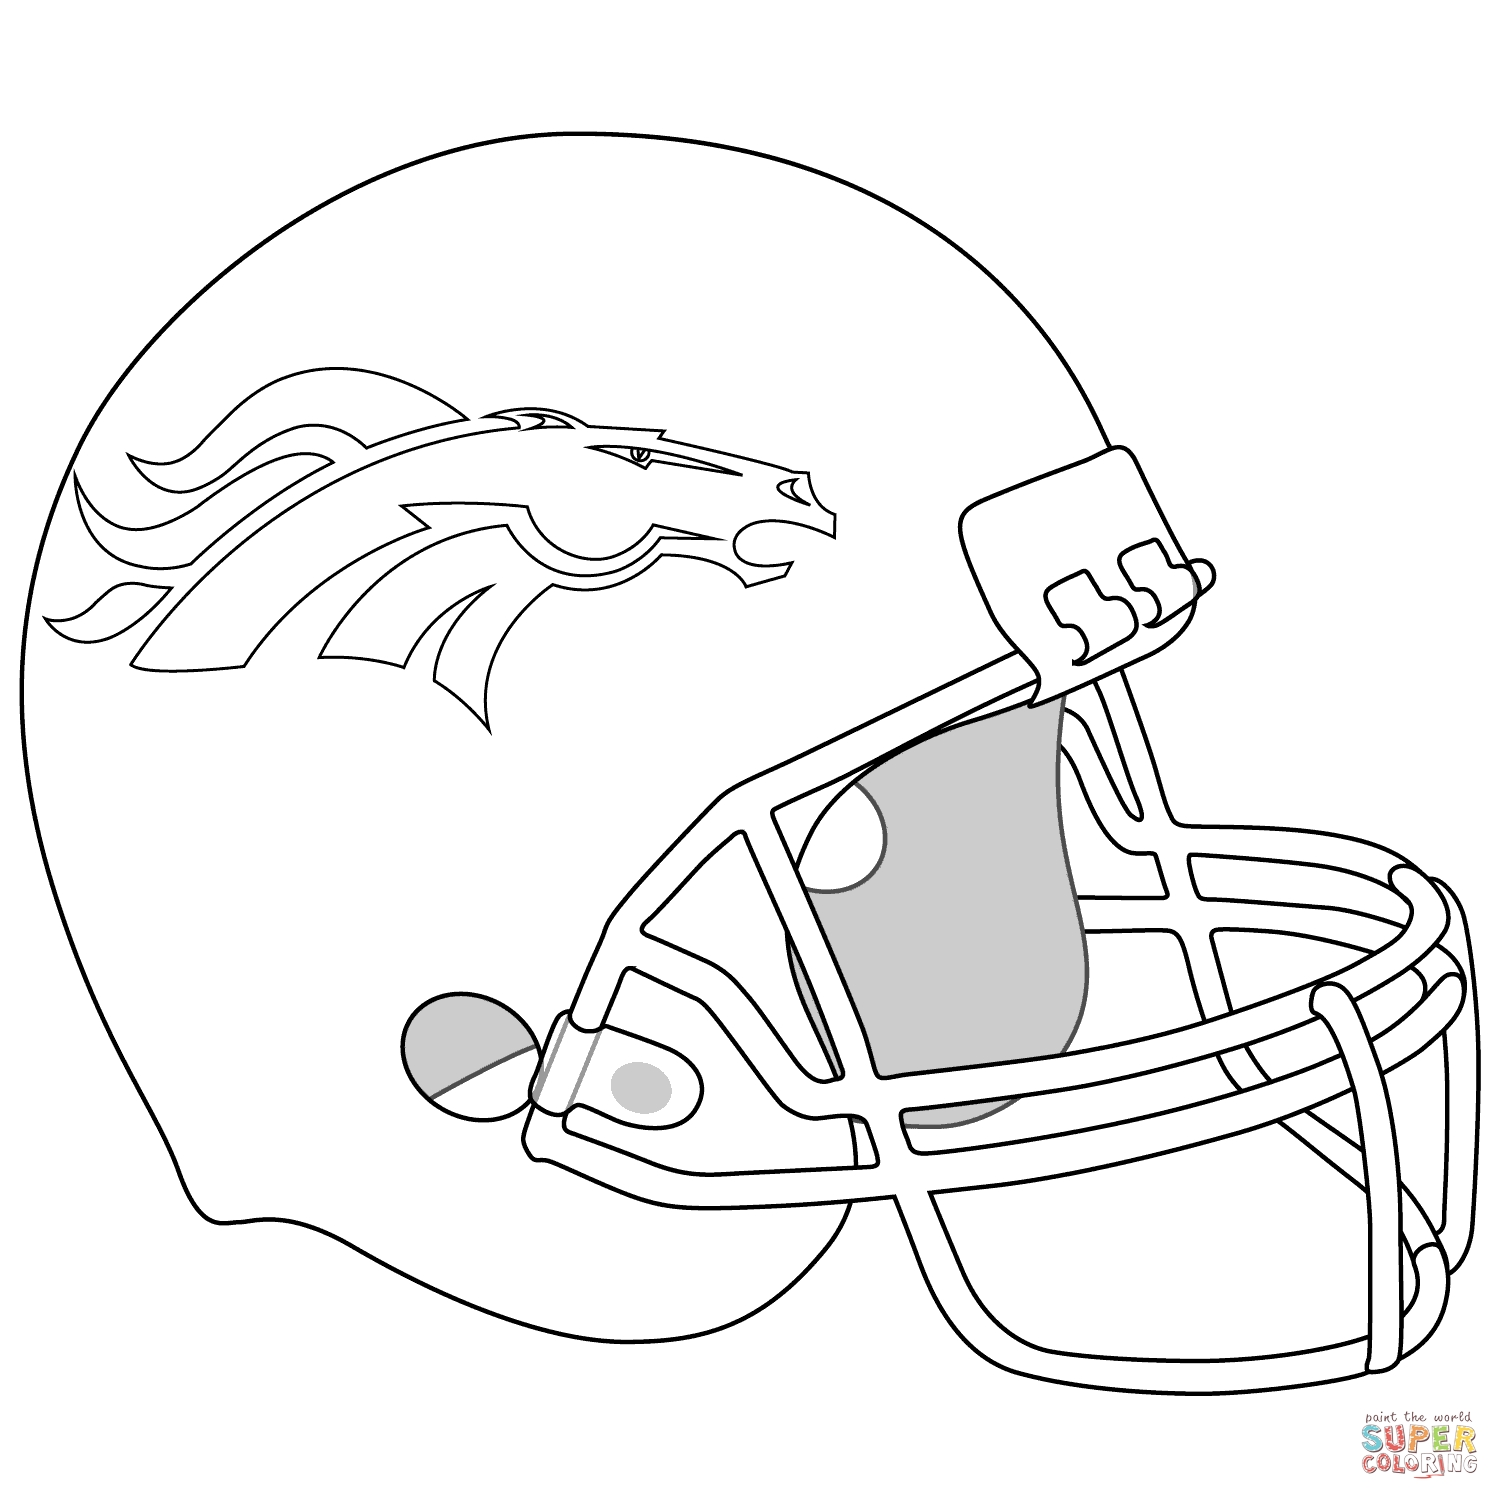 nfl coloring sheets football helmets all nfl helmet coloring pages coloring pages nfl sheets coloring football helmets